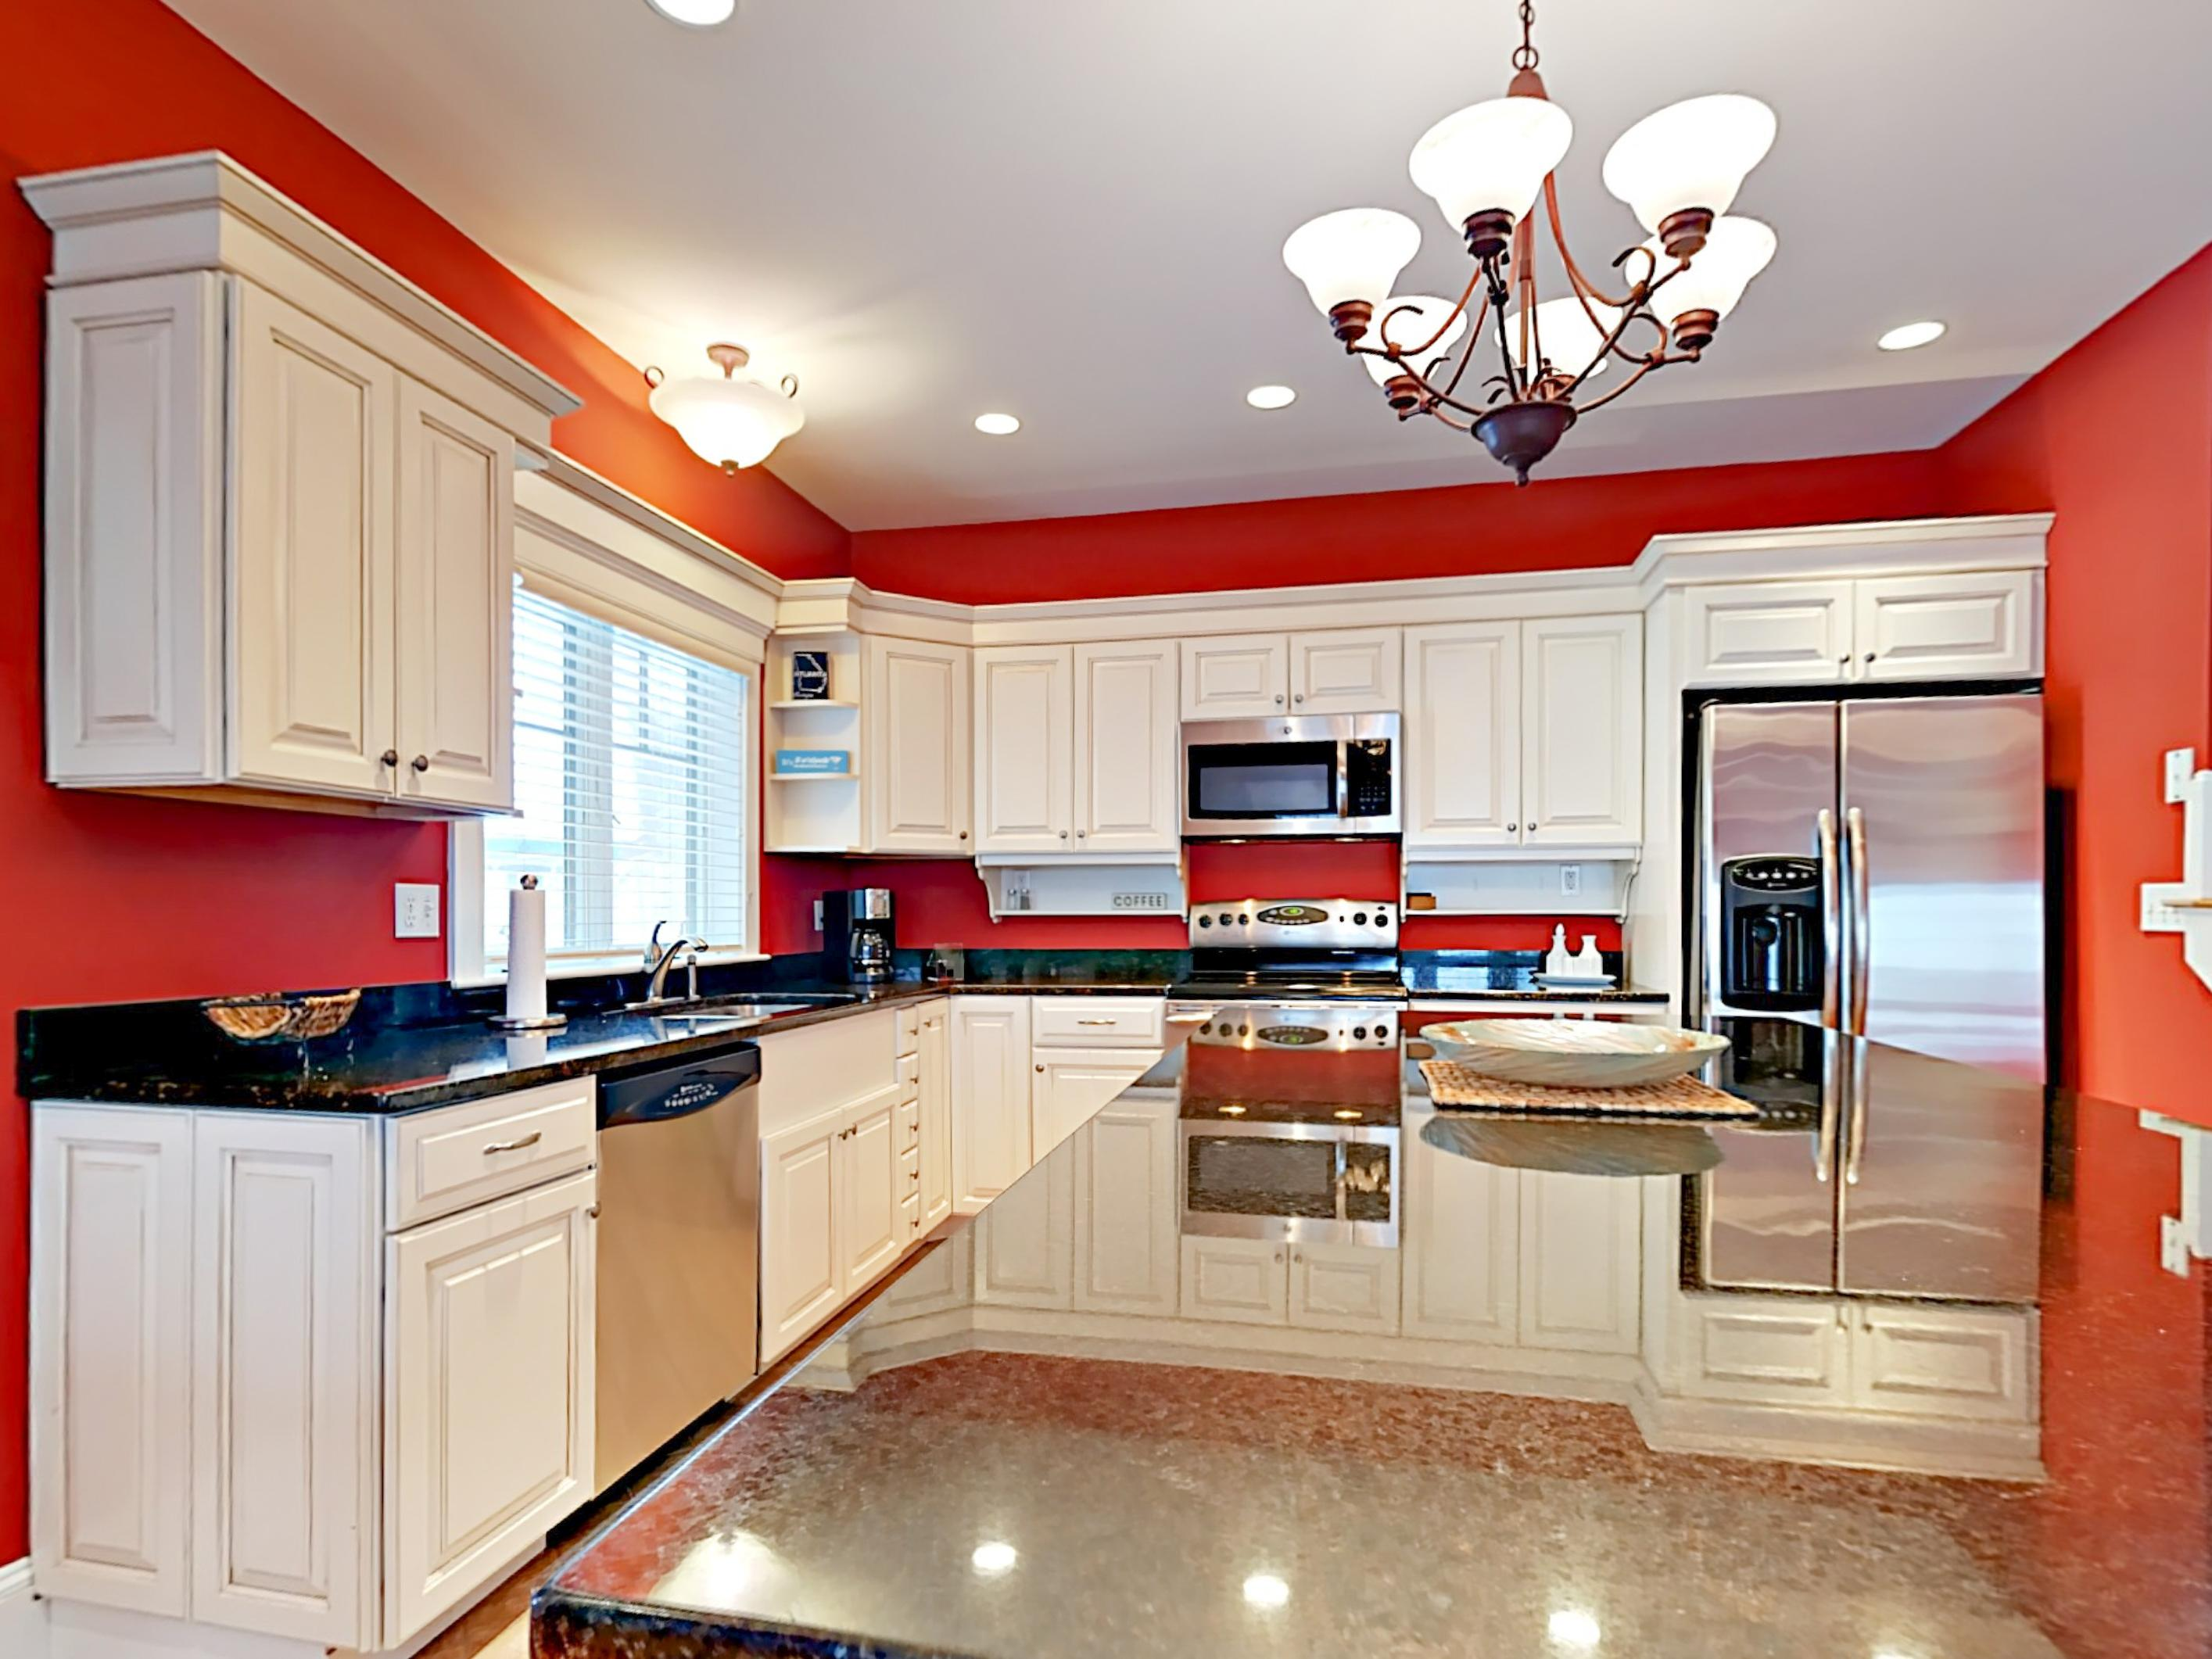 Marble countertops and stainless-steel appliances shine in the well-equipped kitchen.